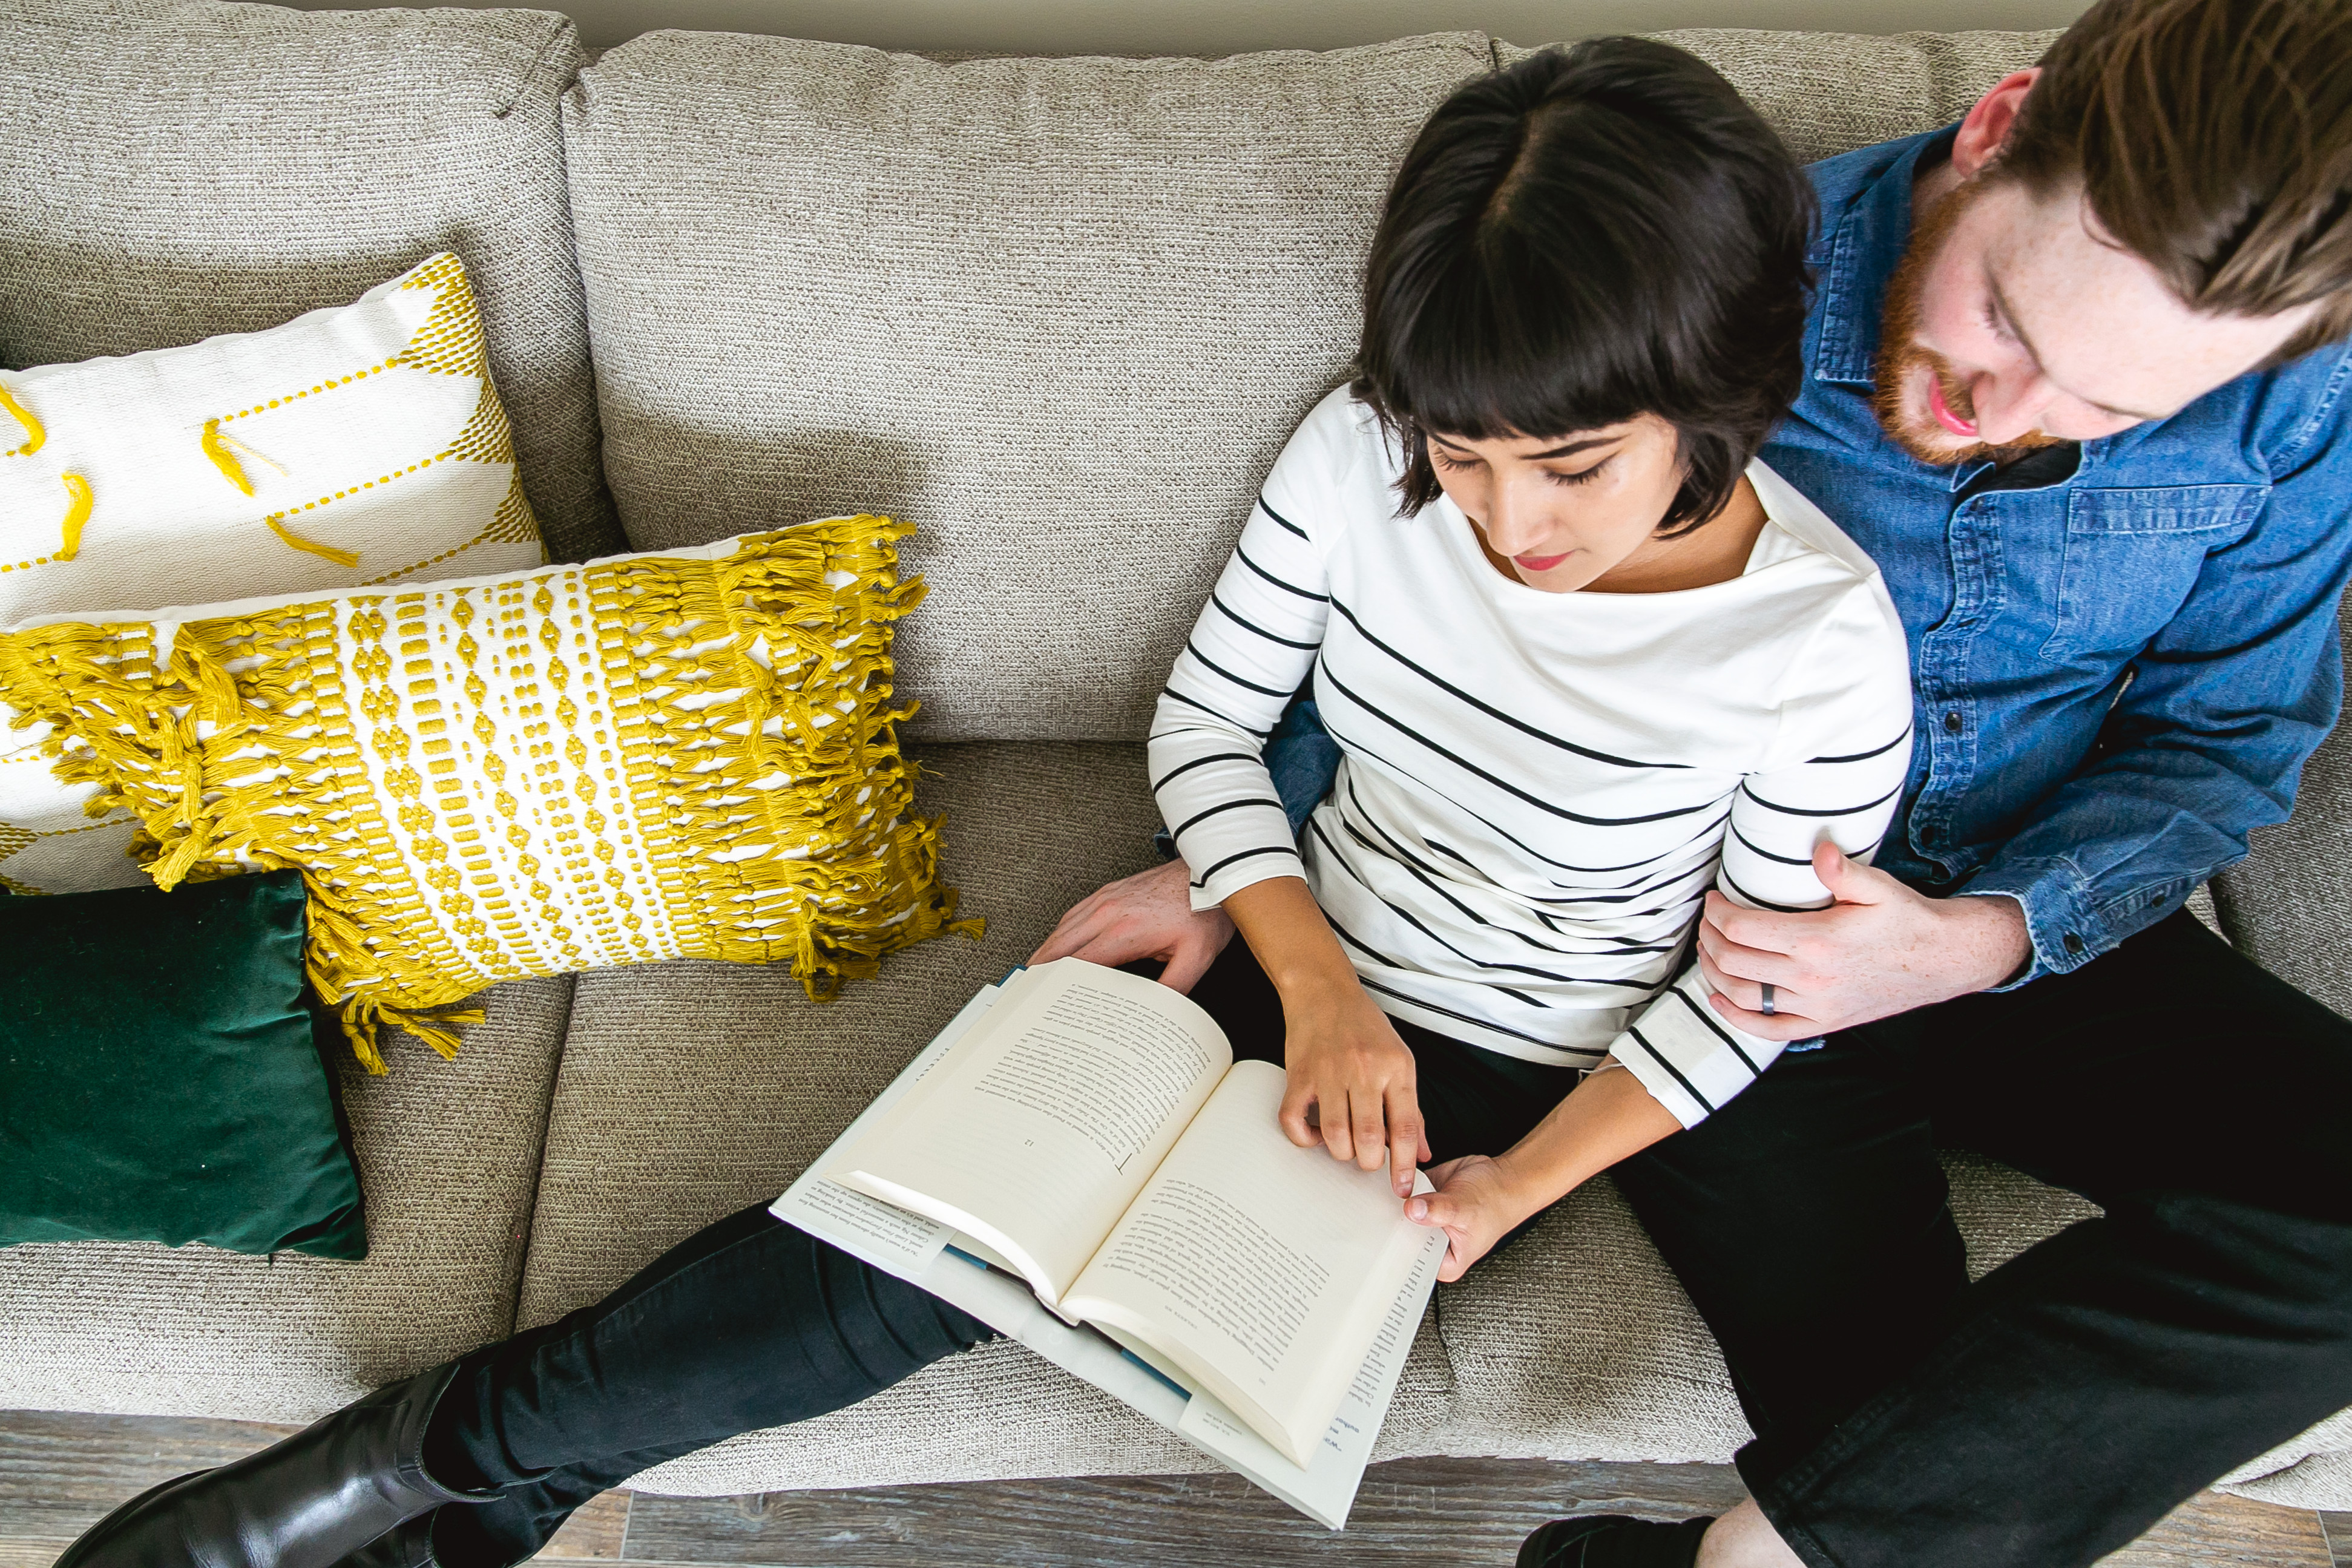 Couple cuddled up on the couch reading a book together in their manufactured home